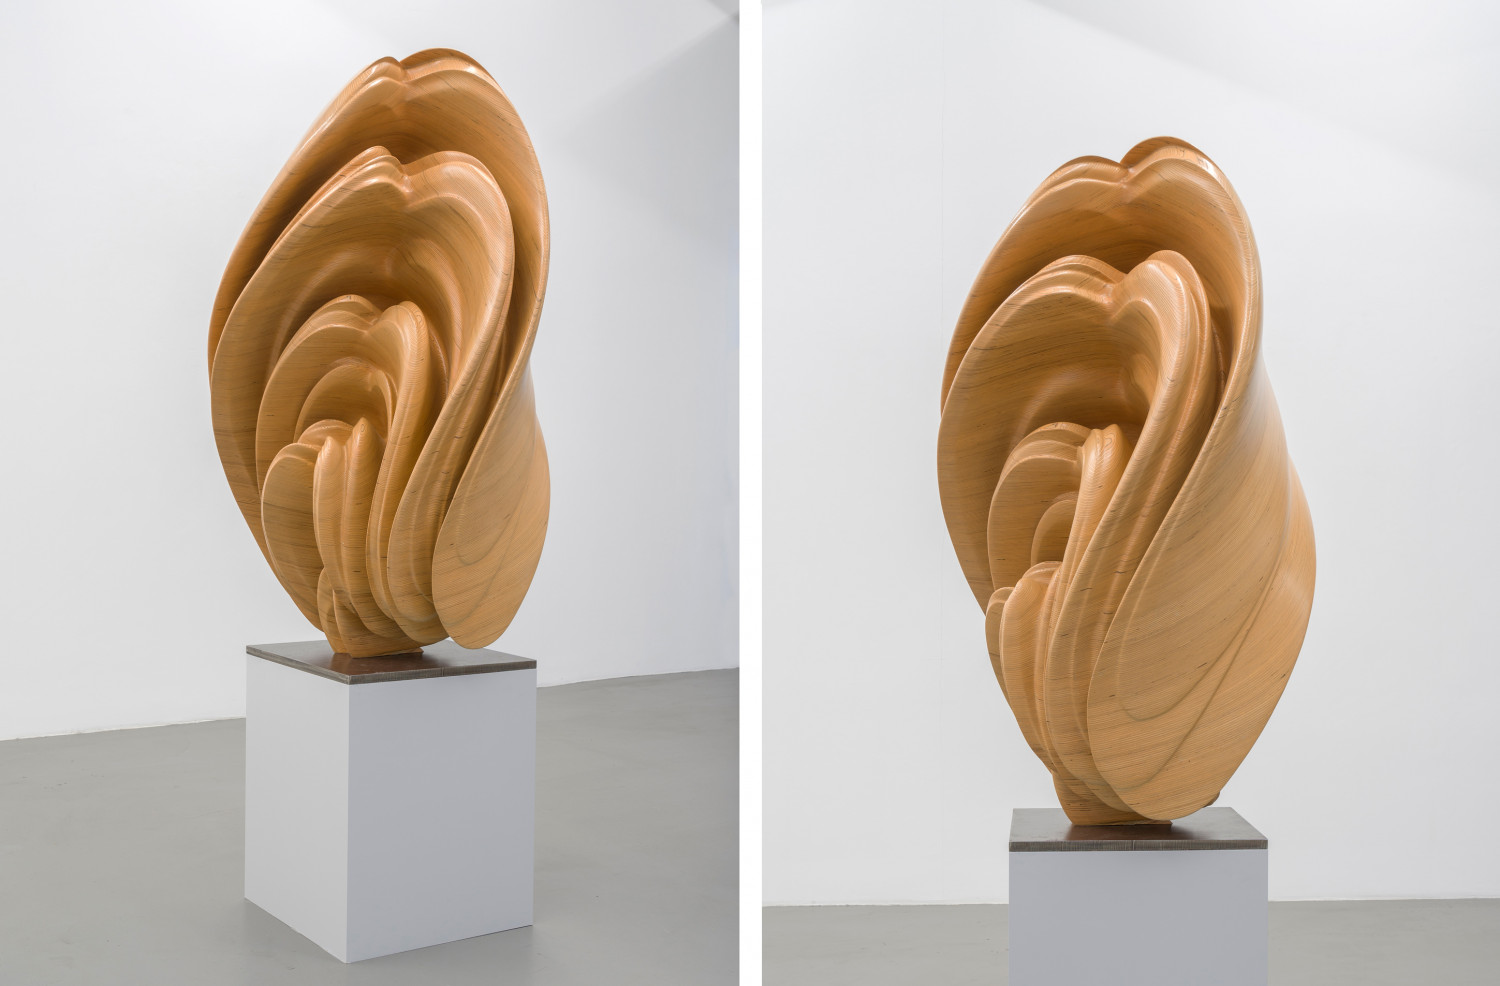 Tony Cragg, 'Willow', 2017